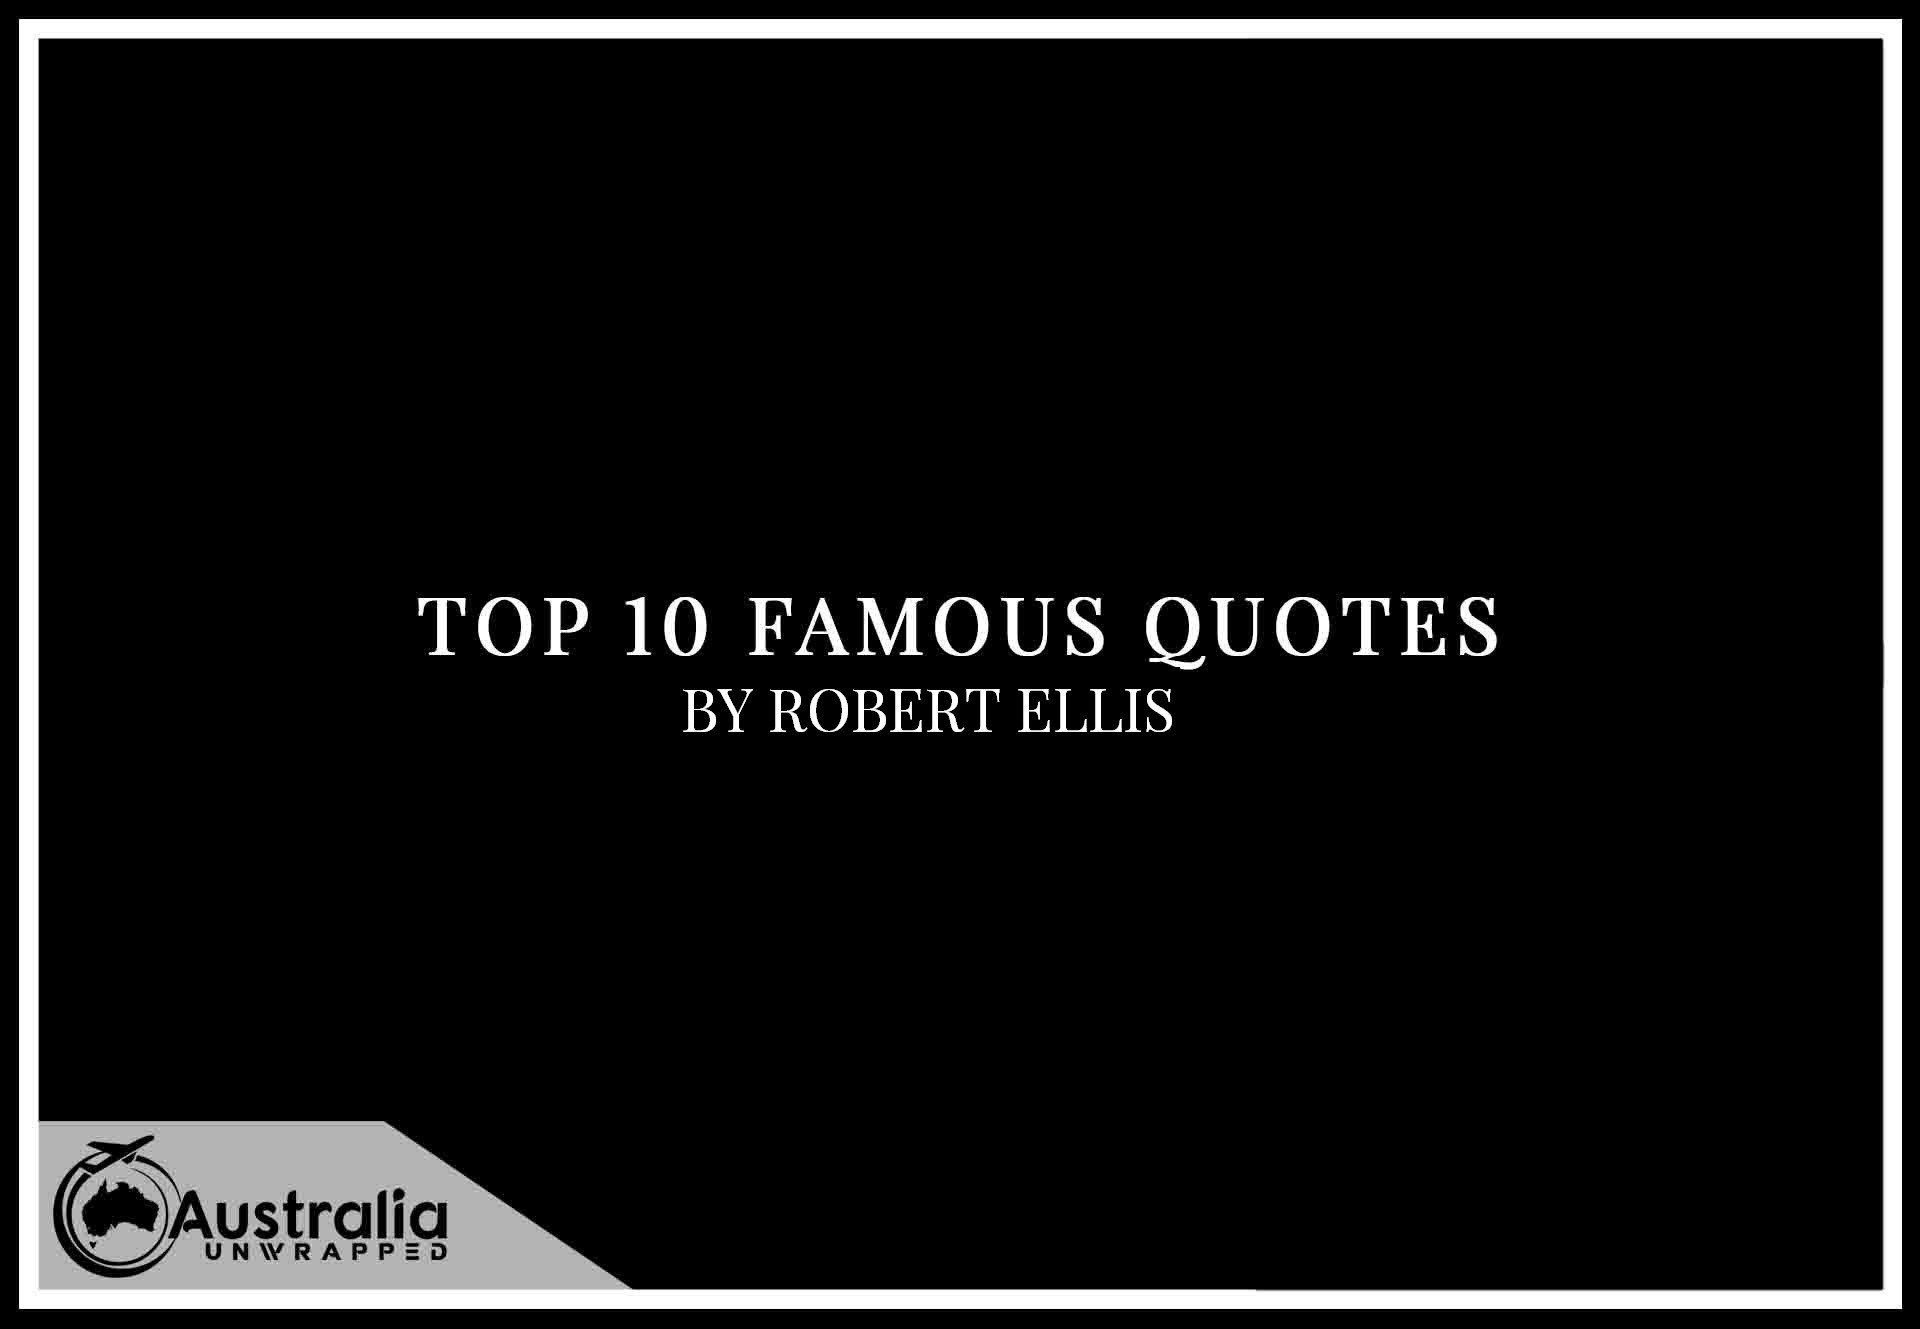 Robert Ellis's Top 10 Popular and Famous Quotes